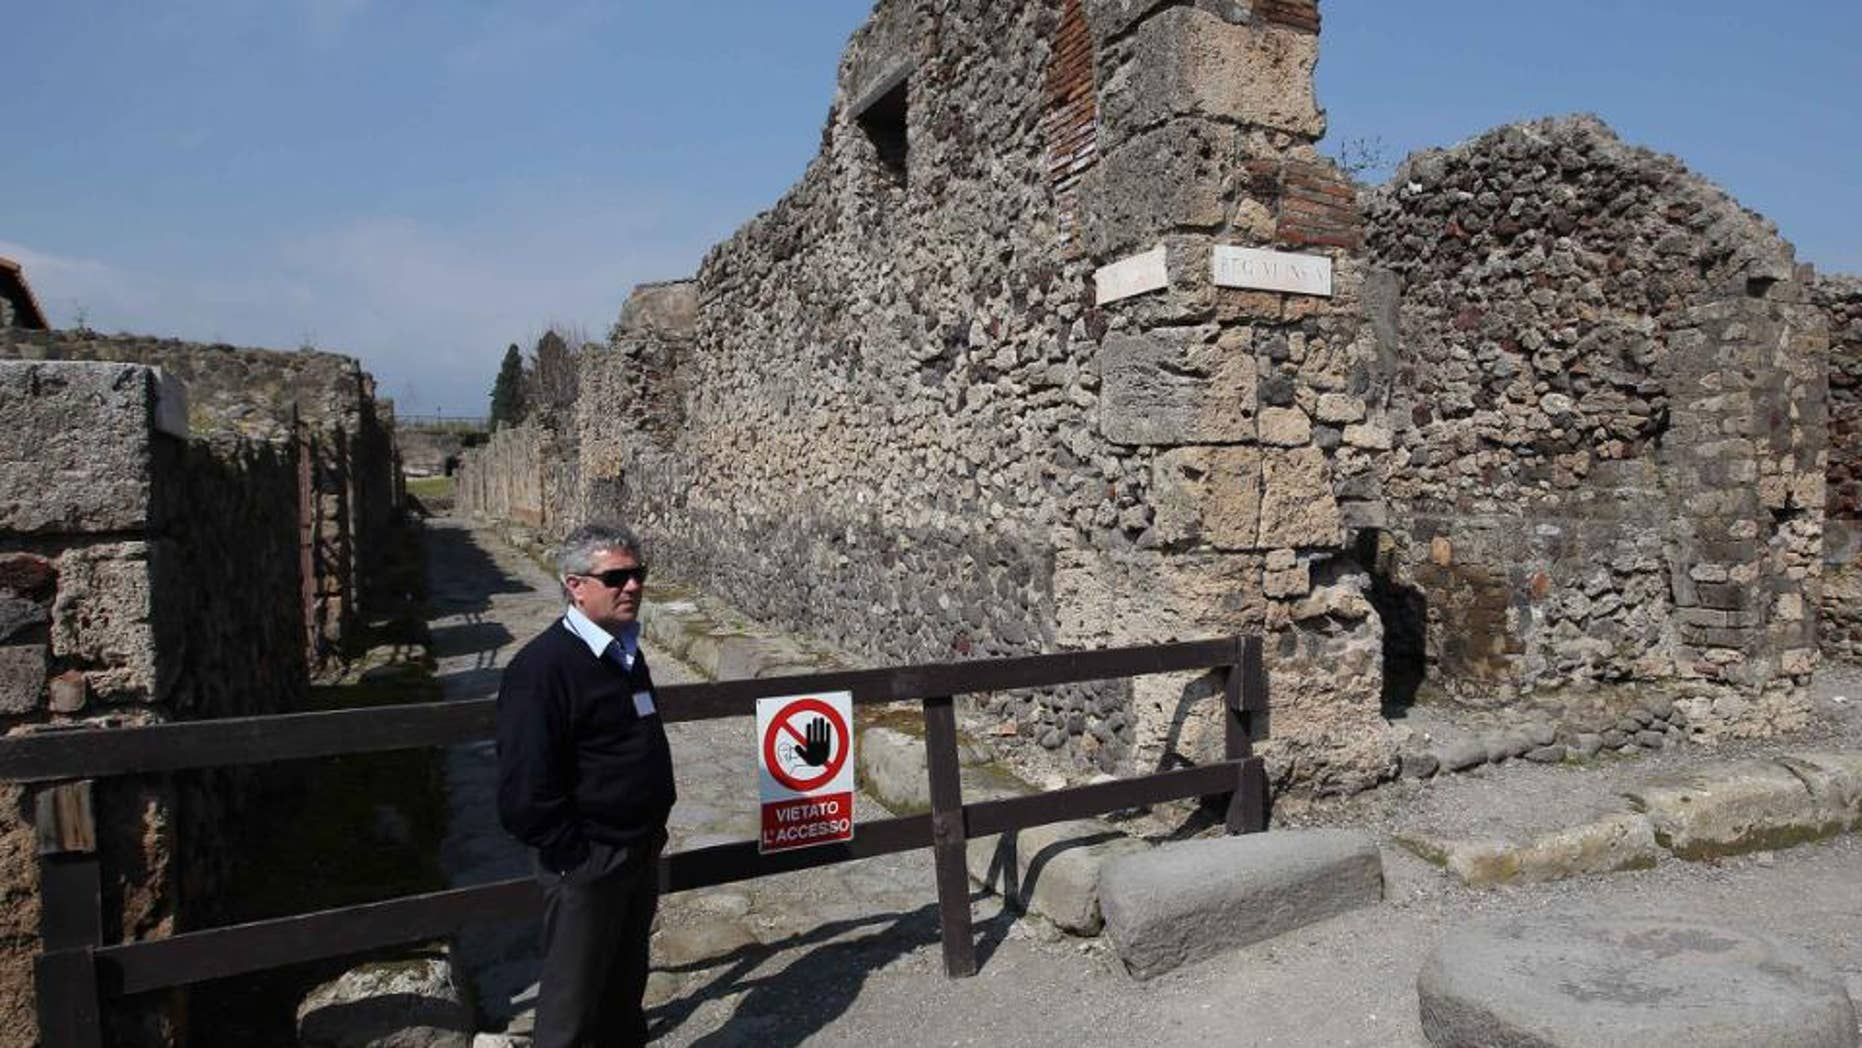 The ancient site of Pompeii was also vandalized in 2014 when thieves stole a fresco of the Greek goddess Artemis from a city wall.